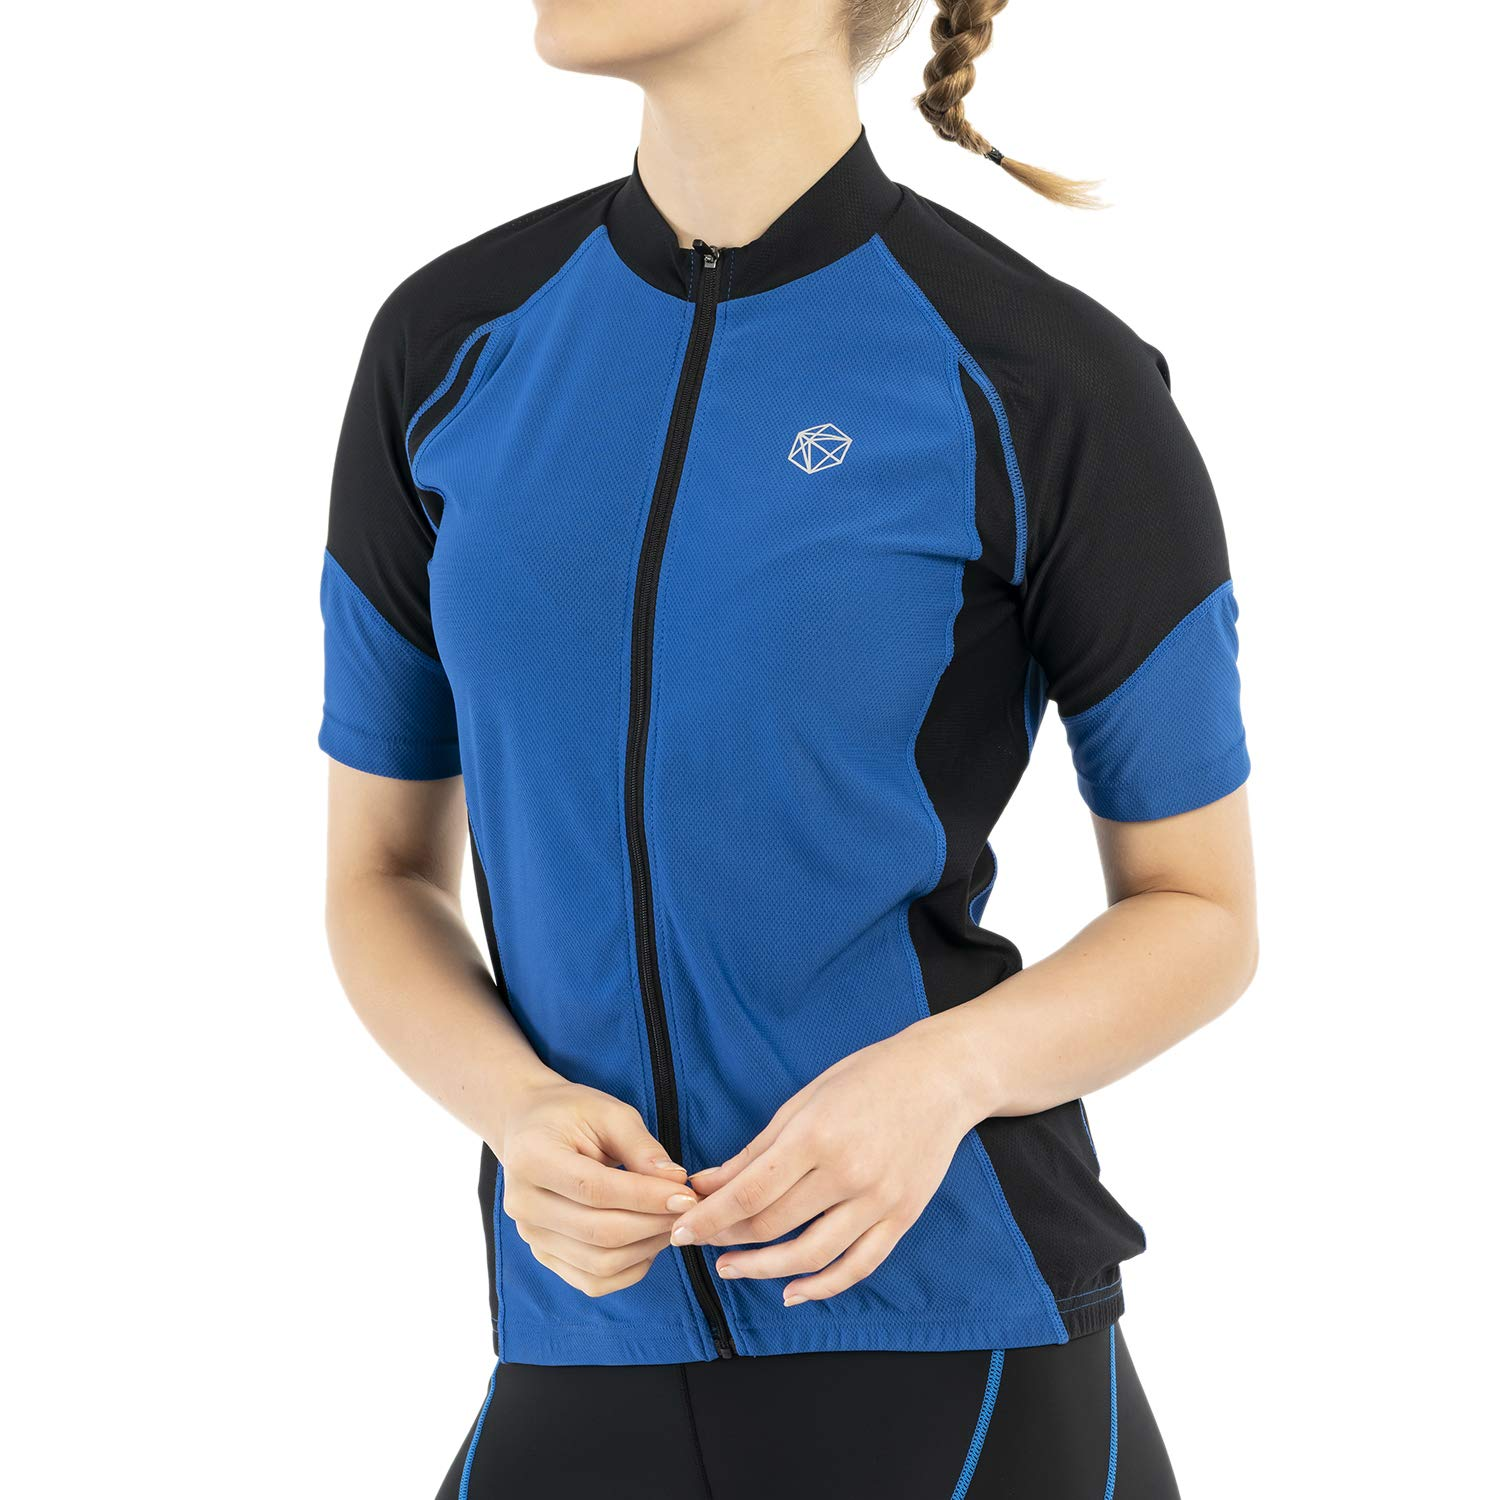 SILIK Women's Cycling Jersey Short Sleeve Bike Shirts with 3 Pocket,